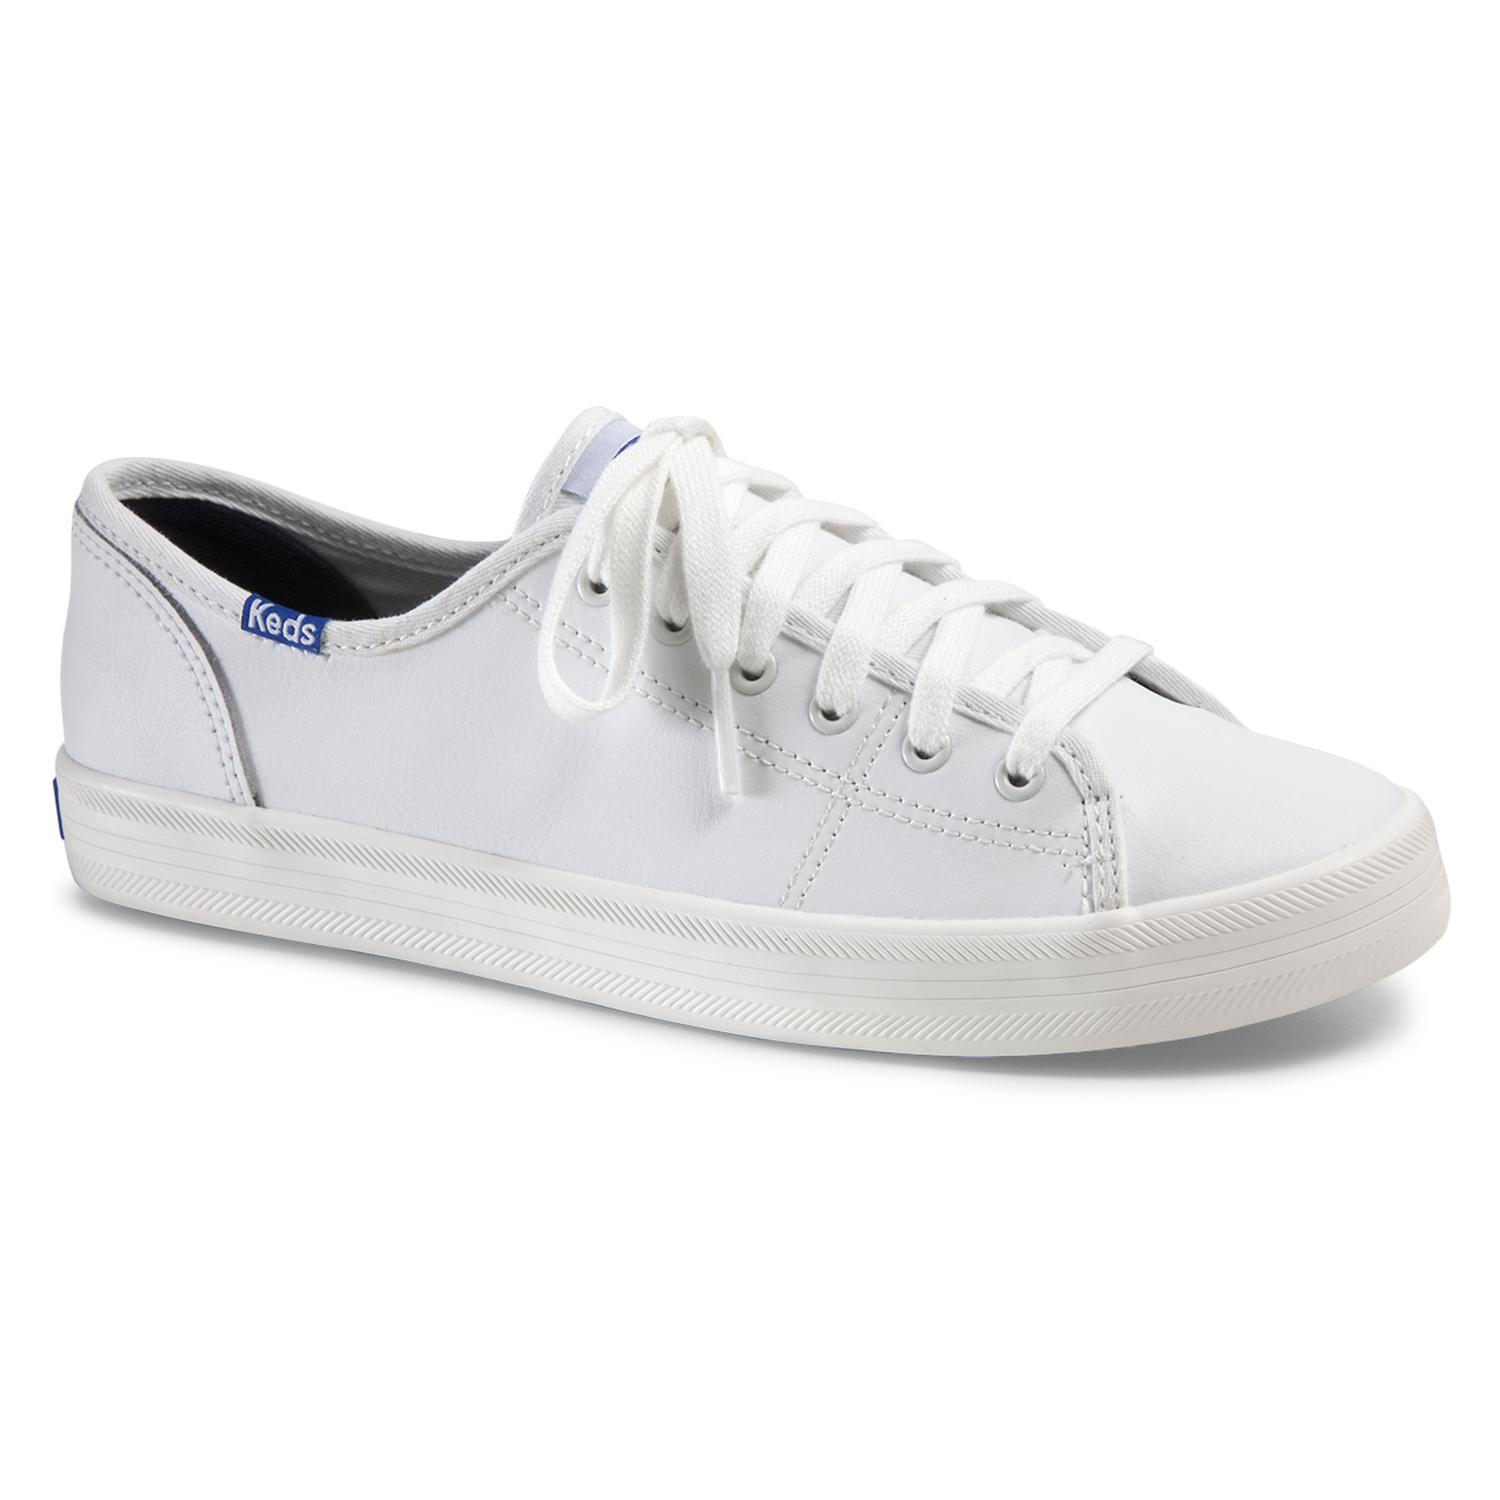 Keds Leather Sneakers For Women Price In Singapore